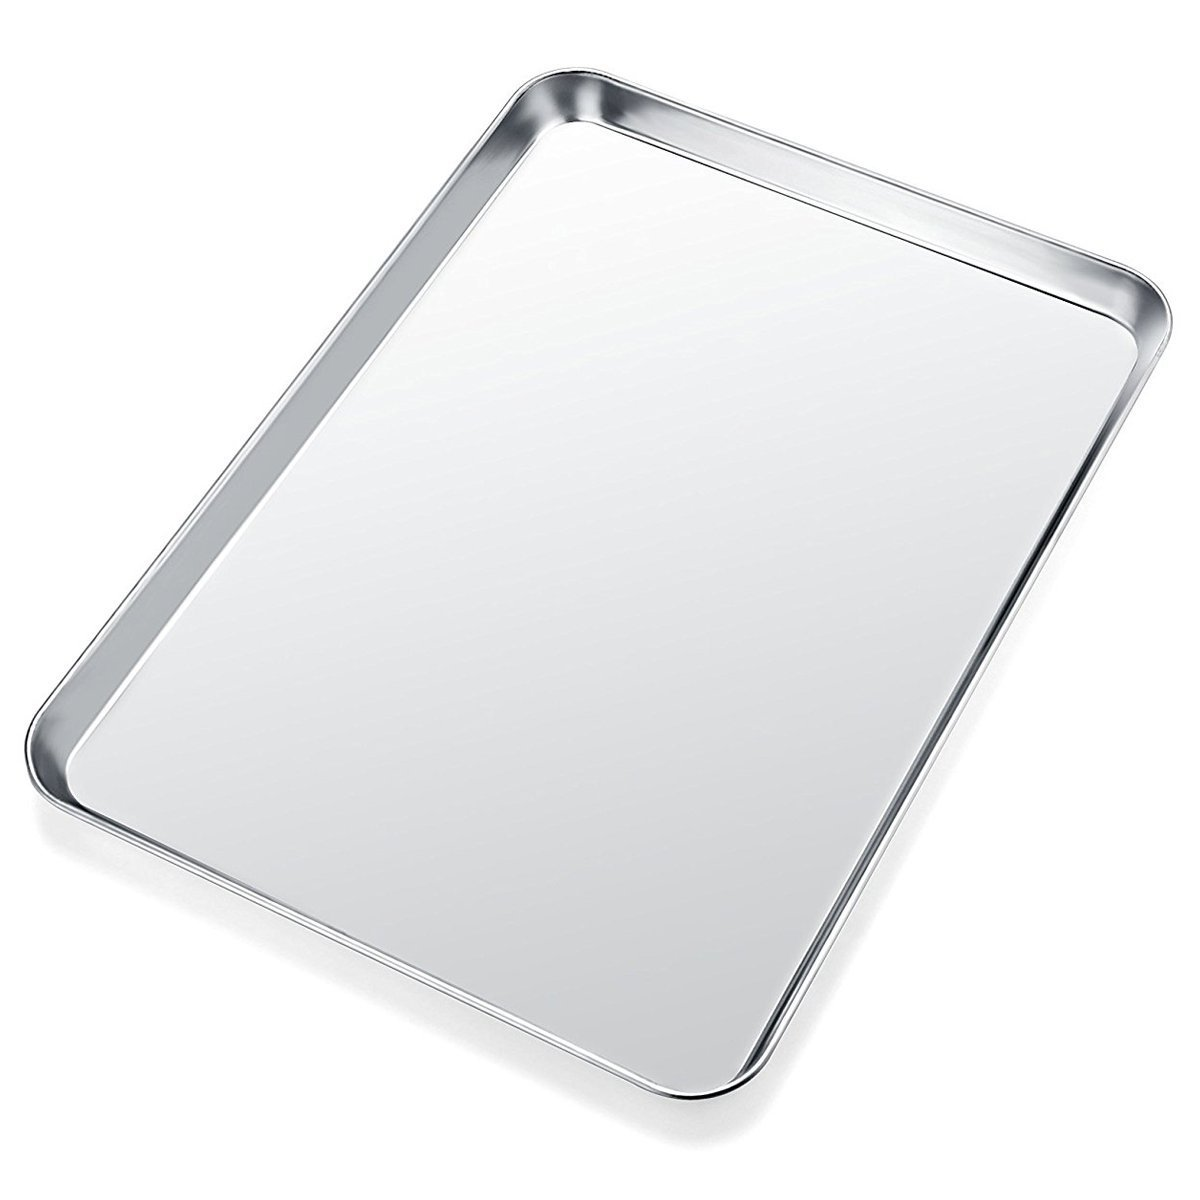 Baking Sheet, Yododo Stainless Steel Baking Pan Cookie Sheet, Rectangle Size 16 x 12 x 1 inch, Healthy & Non Toxic, Rust Free & Less Stick, Easy Clean & Dishwasher Safe